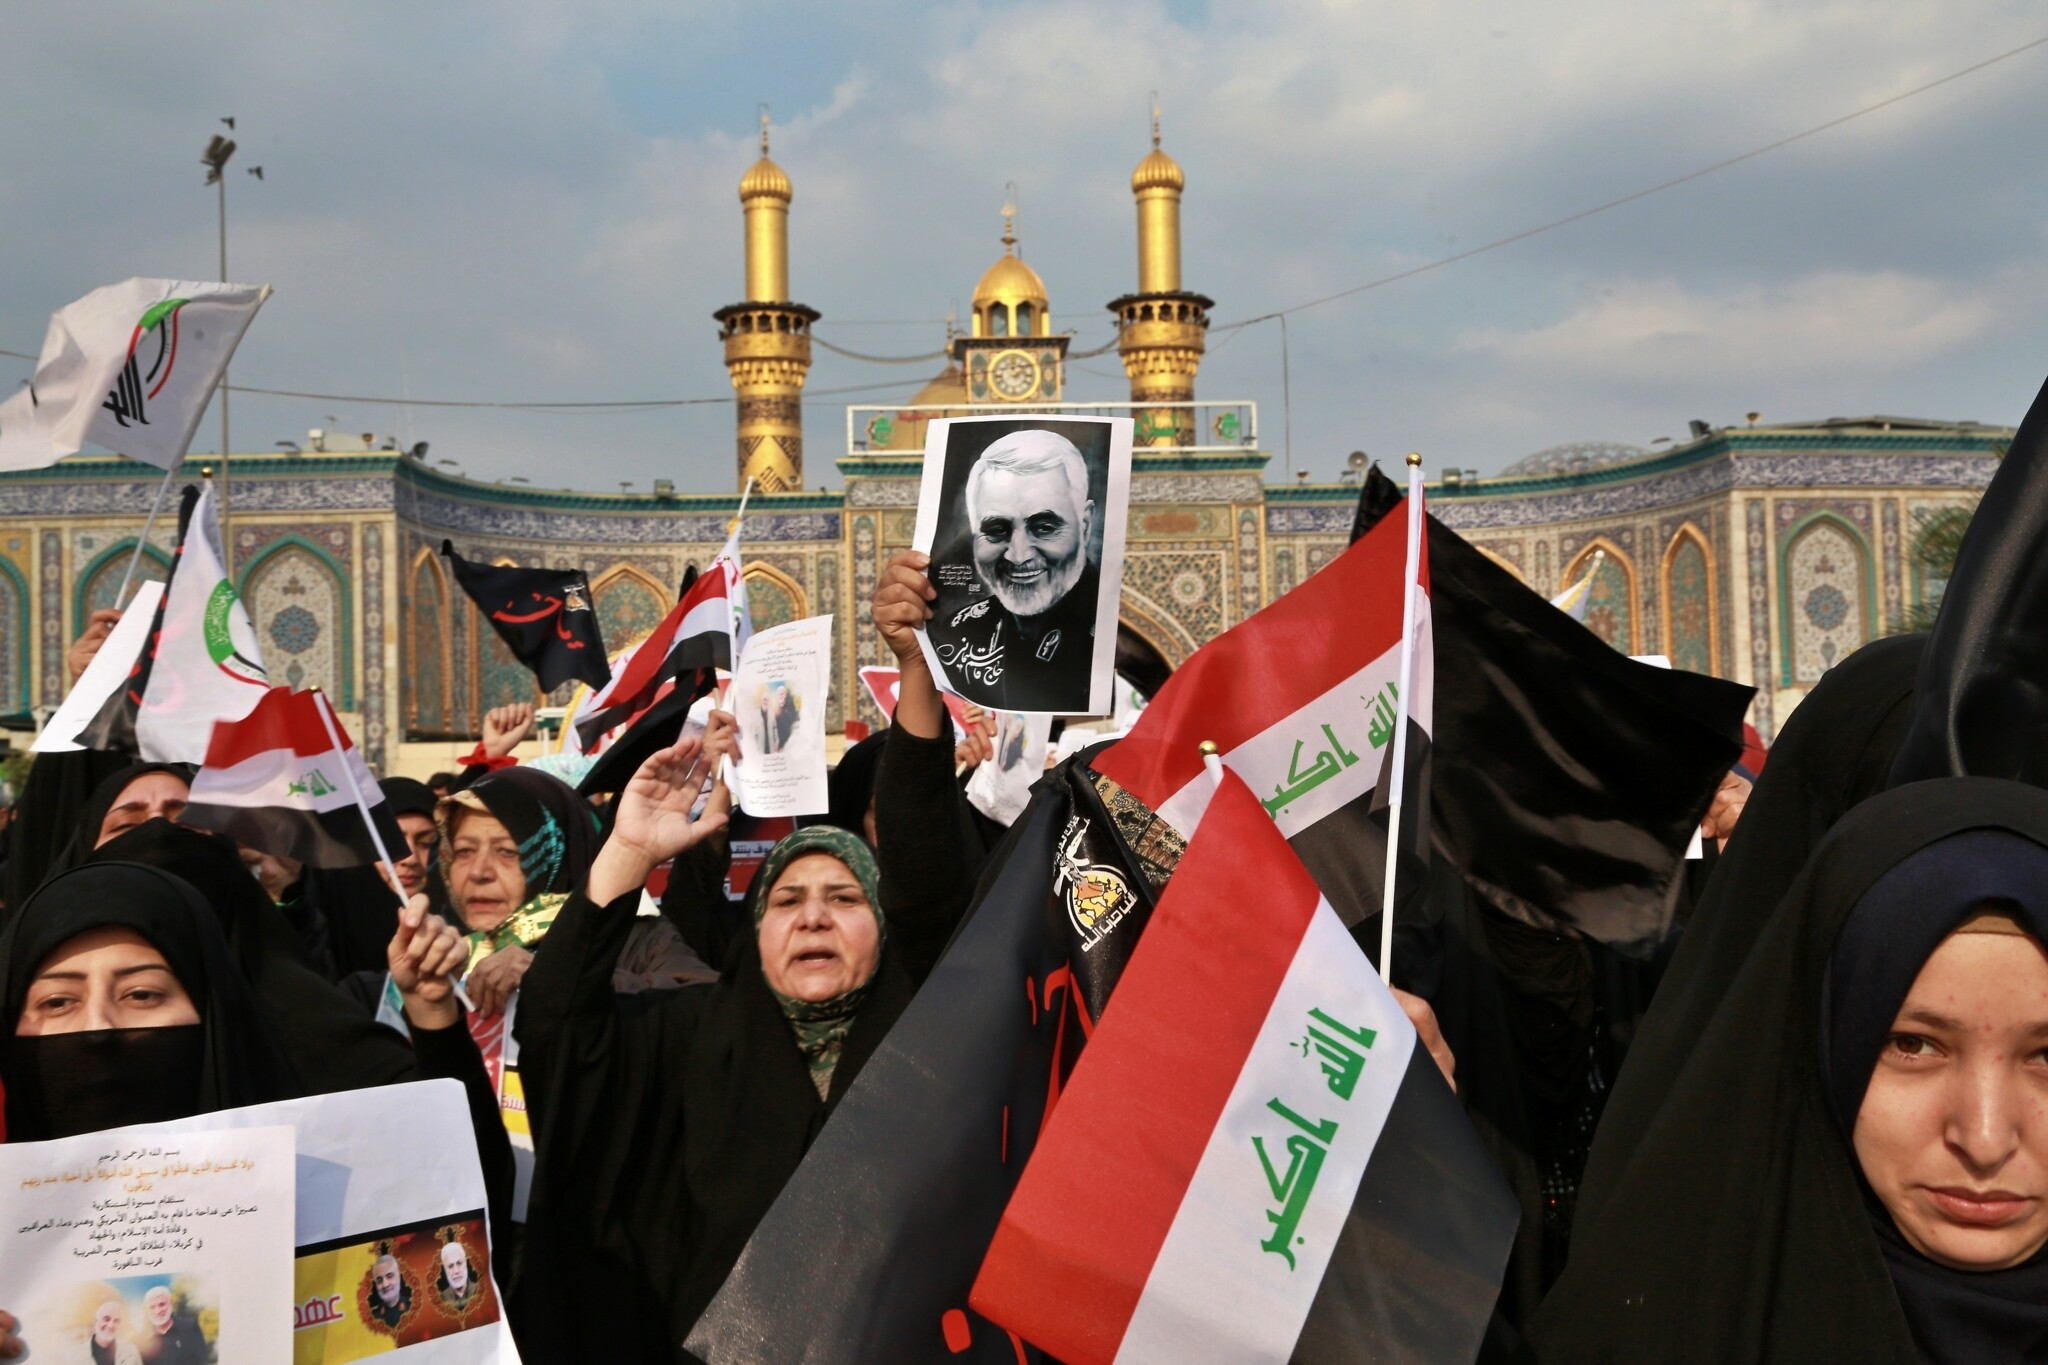 Iran threatens Tel Aviv, US bases in Middle East after killing of Soleimani: Shiite Muslims demonstrate over the US airstrike that killed Iranian Revolutionary Guard Gen. Qassem Soleimani, in the posters, in Karbala, Iraq, Jan. 4, 2020 (AP Photo/Khalid Mohammed)